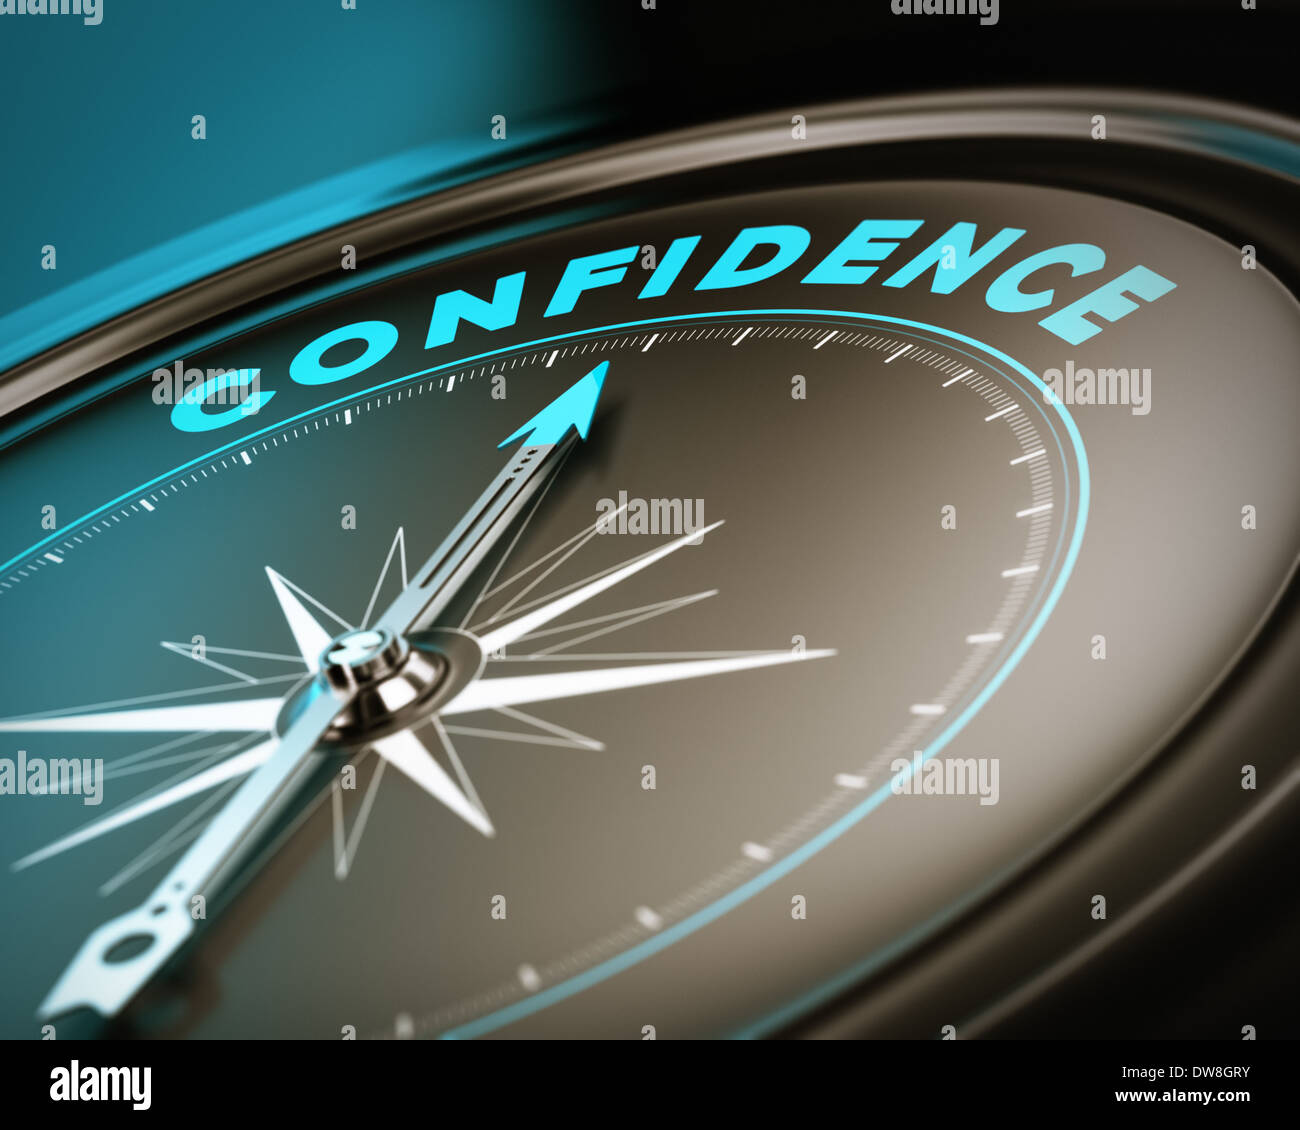 Compass with needle pointing the word confidence, self esteem concept with blue and brown tones. Focus on the top - Stock Image